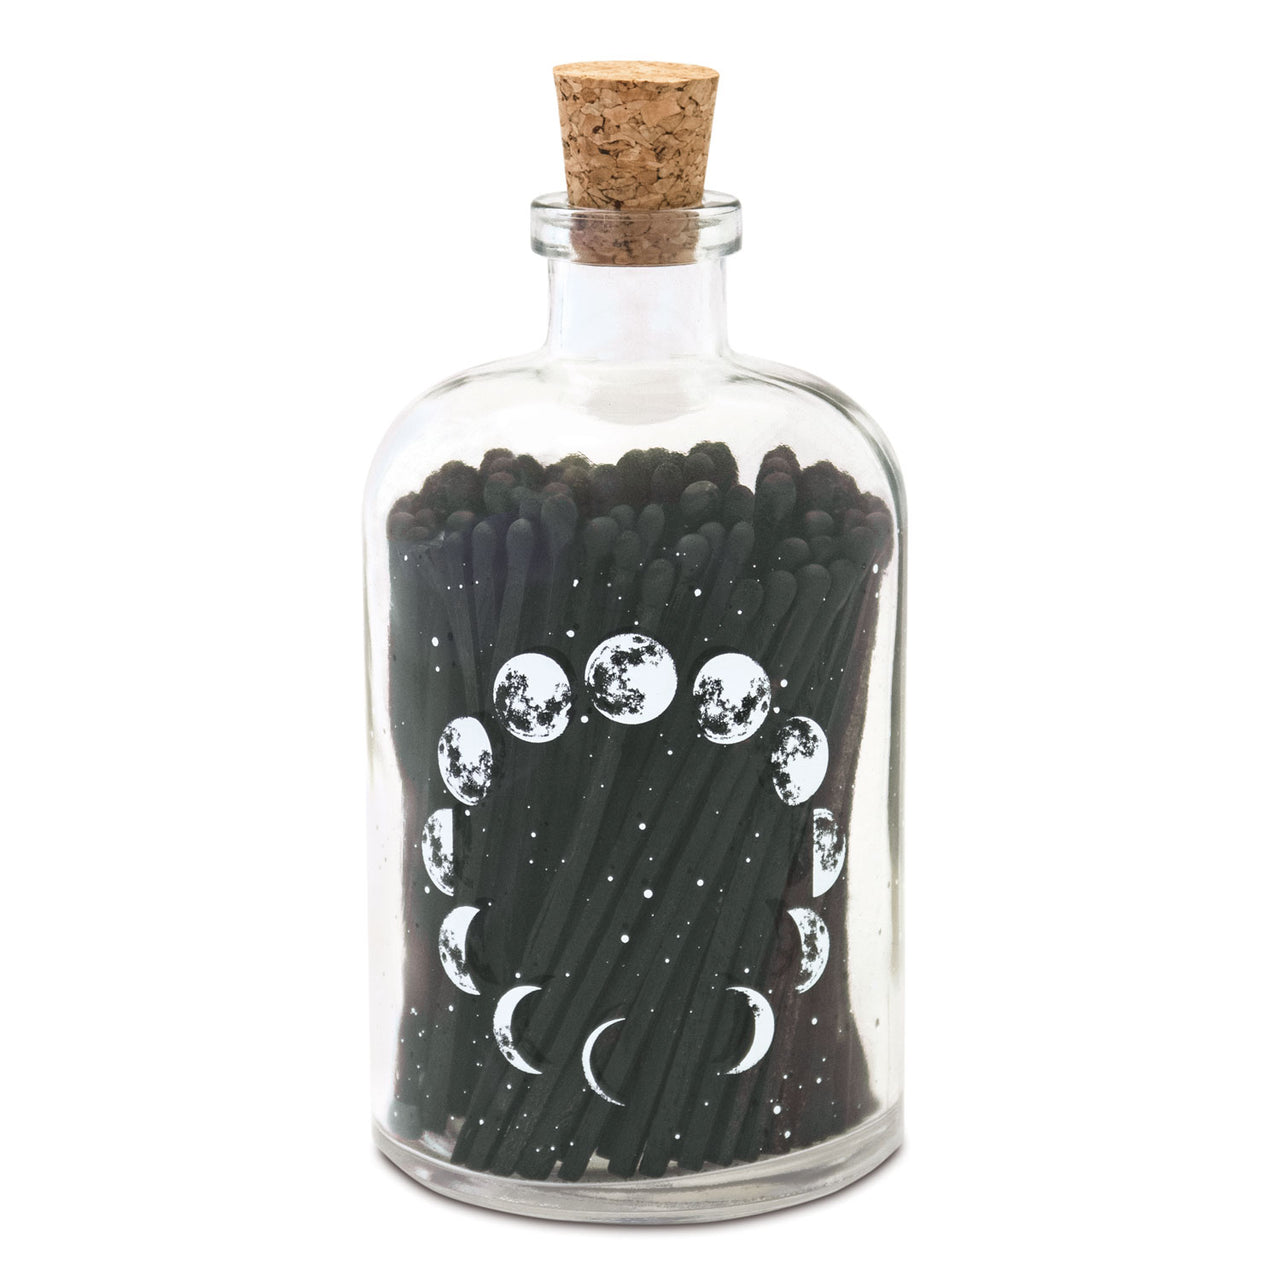 ASTRONOMY LARGE APOTHECARY JAR MATCHES